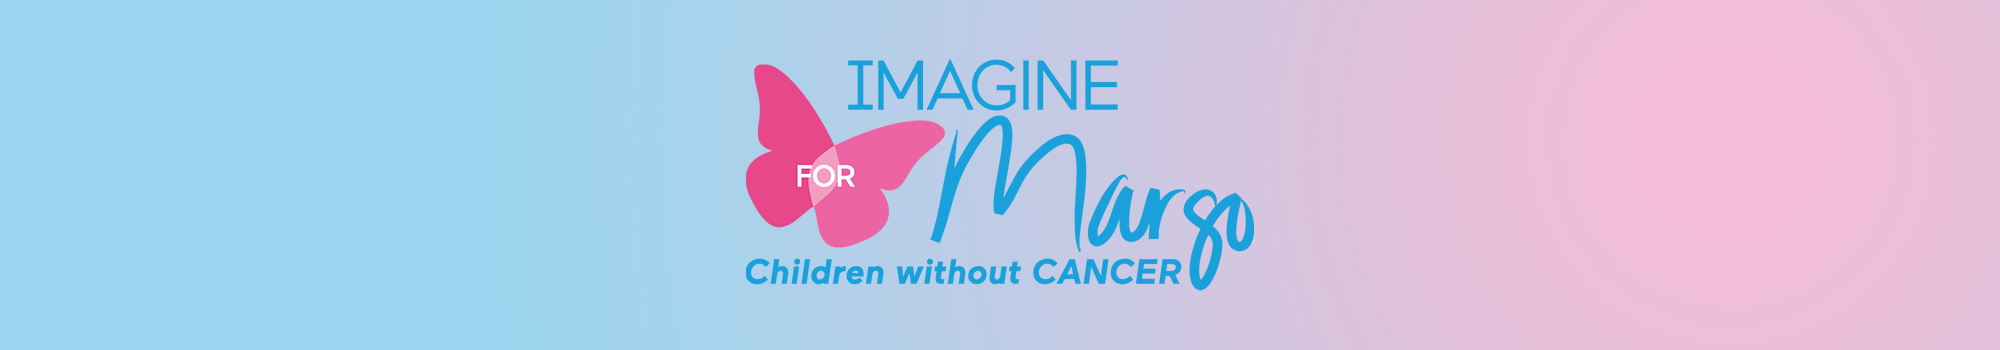 Courir pour eux/Run for them - IMAGINE FOR MARGO- Children without cancer